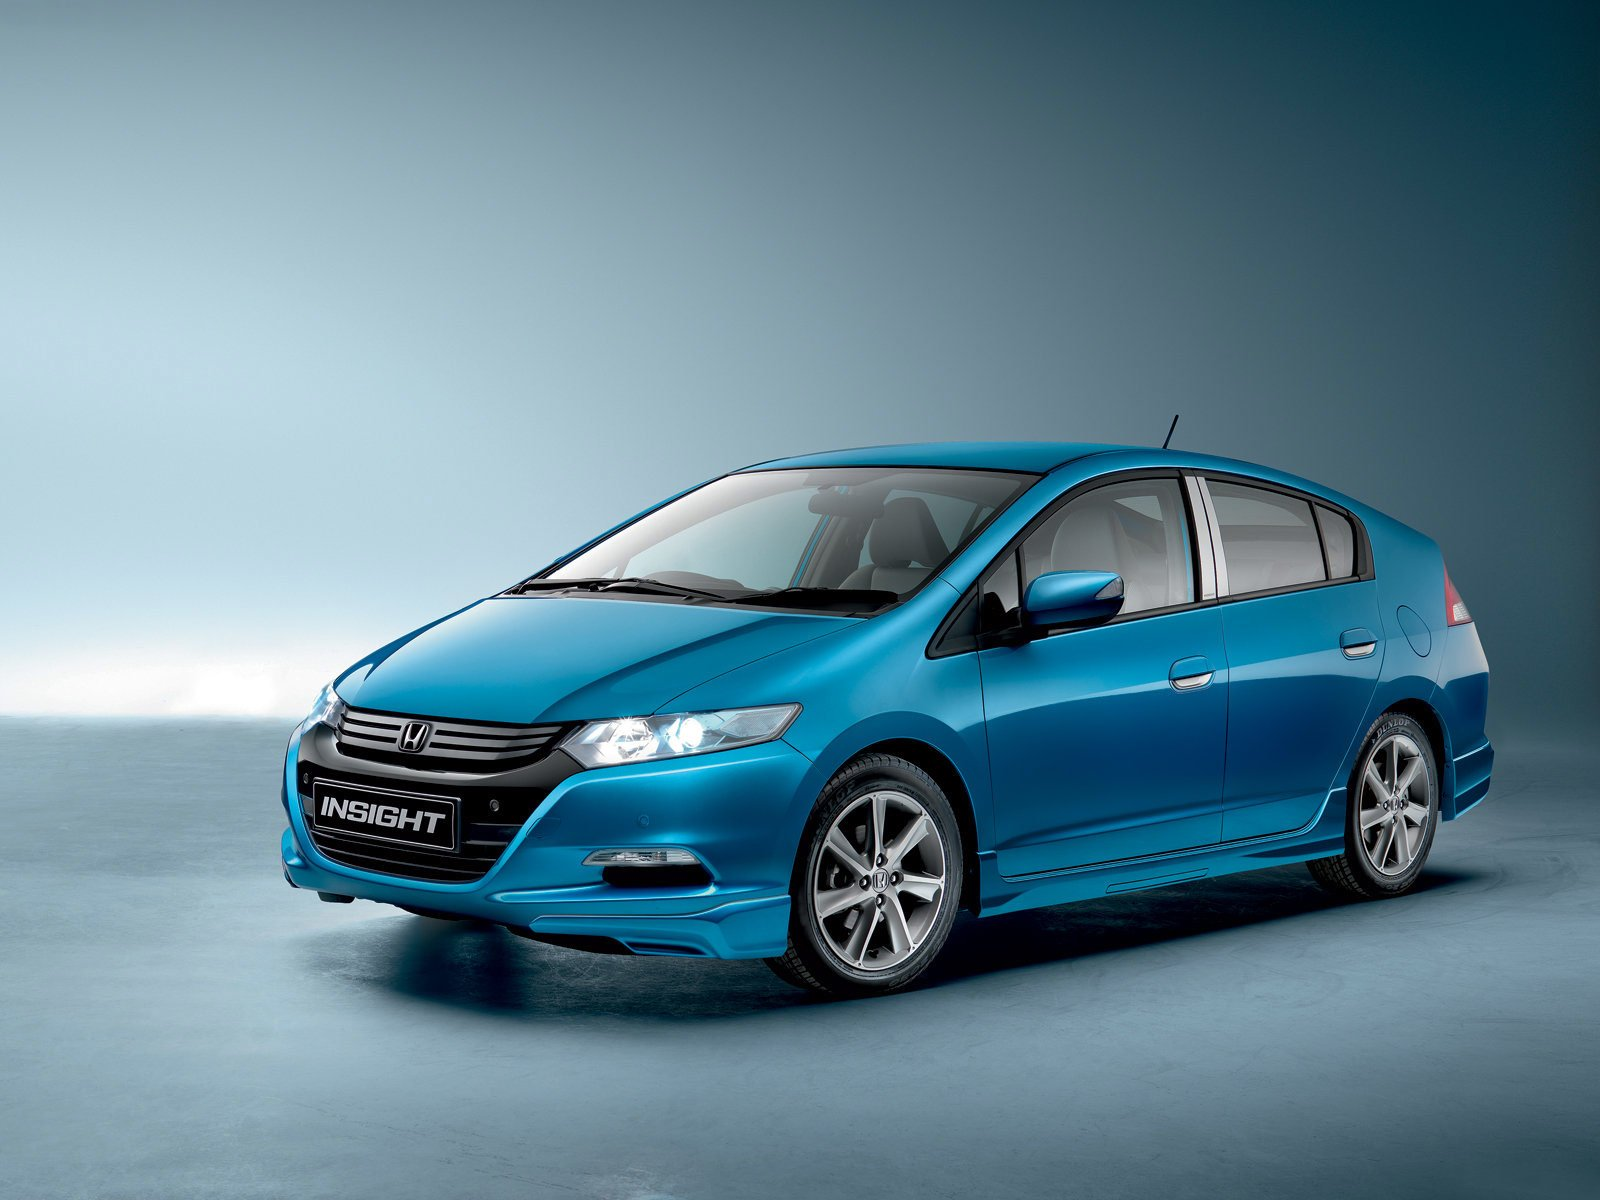 New 2010 Honda Insight Eu Version Japanese Car Photos On This Month